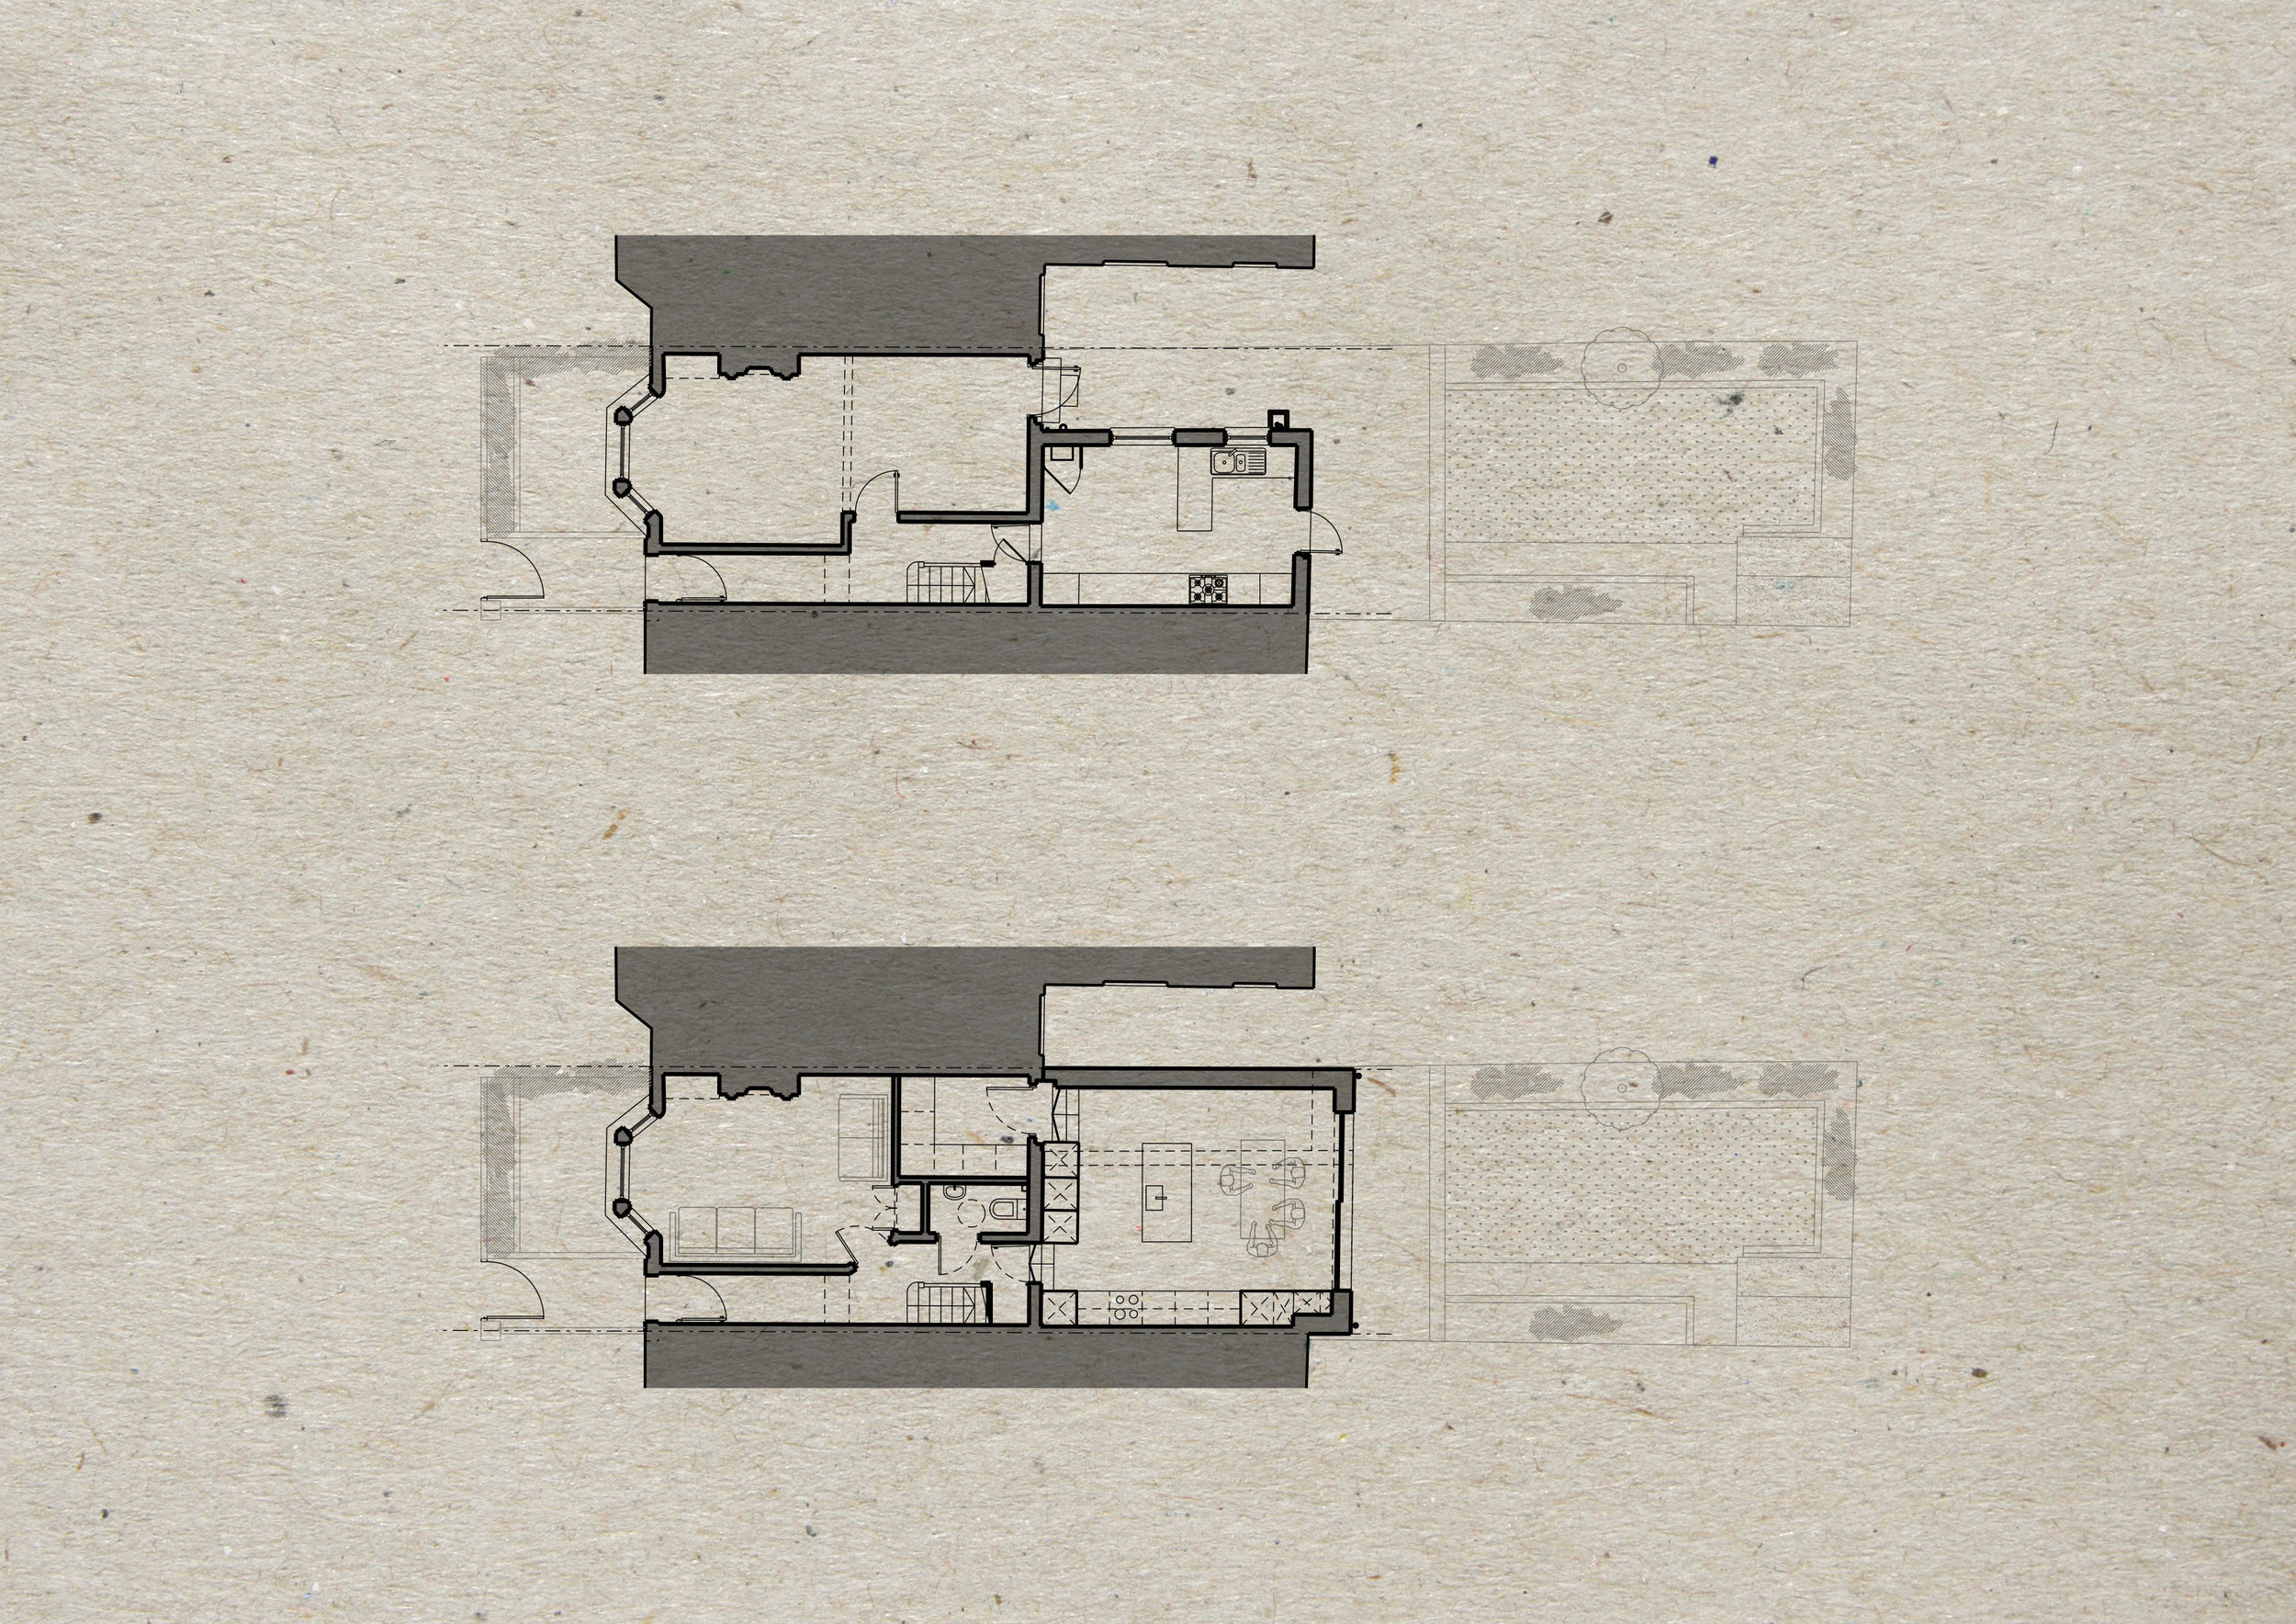 Existing (top) and Proposed (bottom) Plans